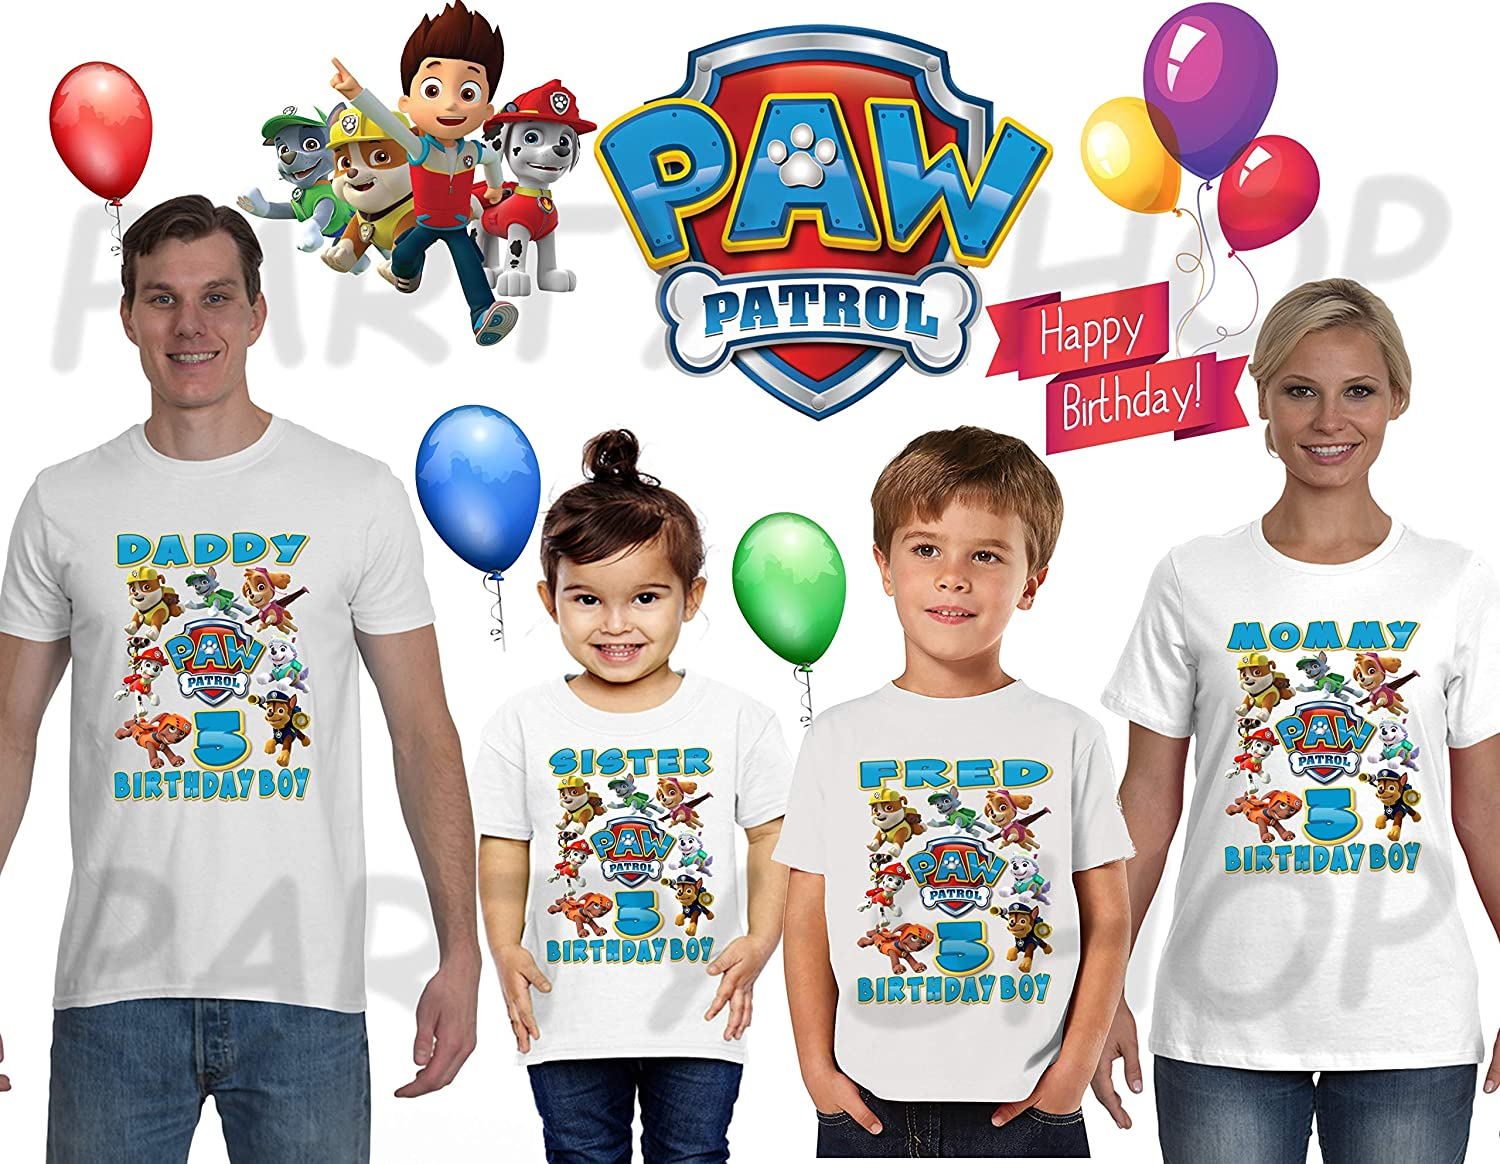 Paw Patrol BIRTHDAY SHIRT T SHIRTS PAW PATROL Birthday PartyADD Any Name And Age FAMILY Matching Shirts Boys ShirtsPaw Shirt